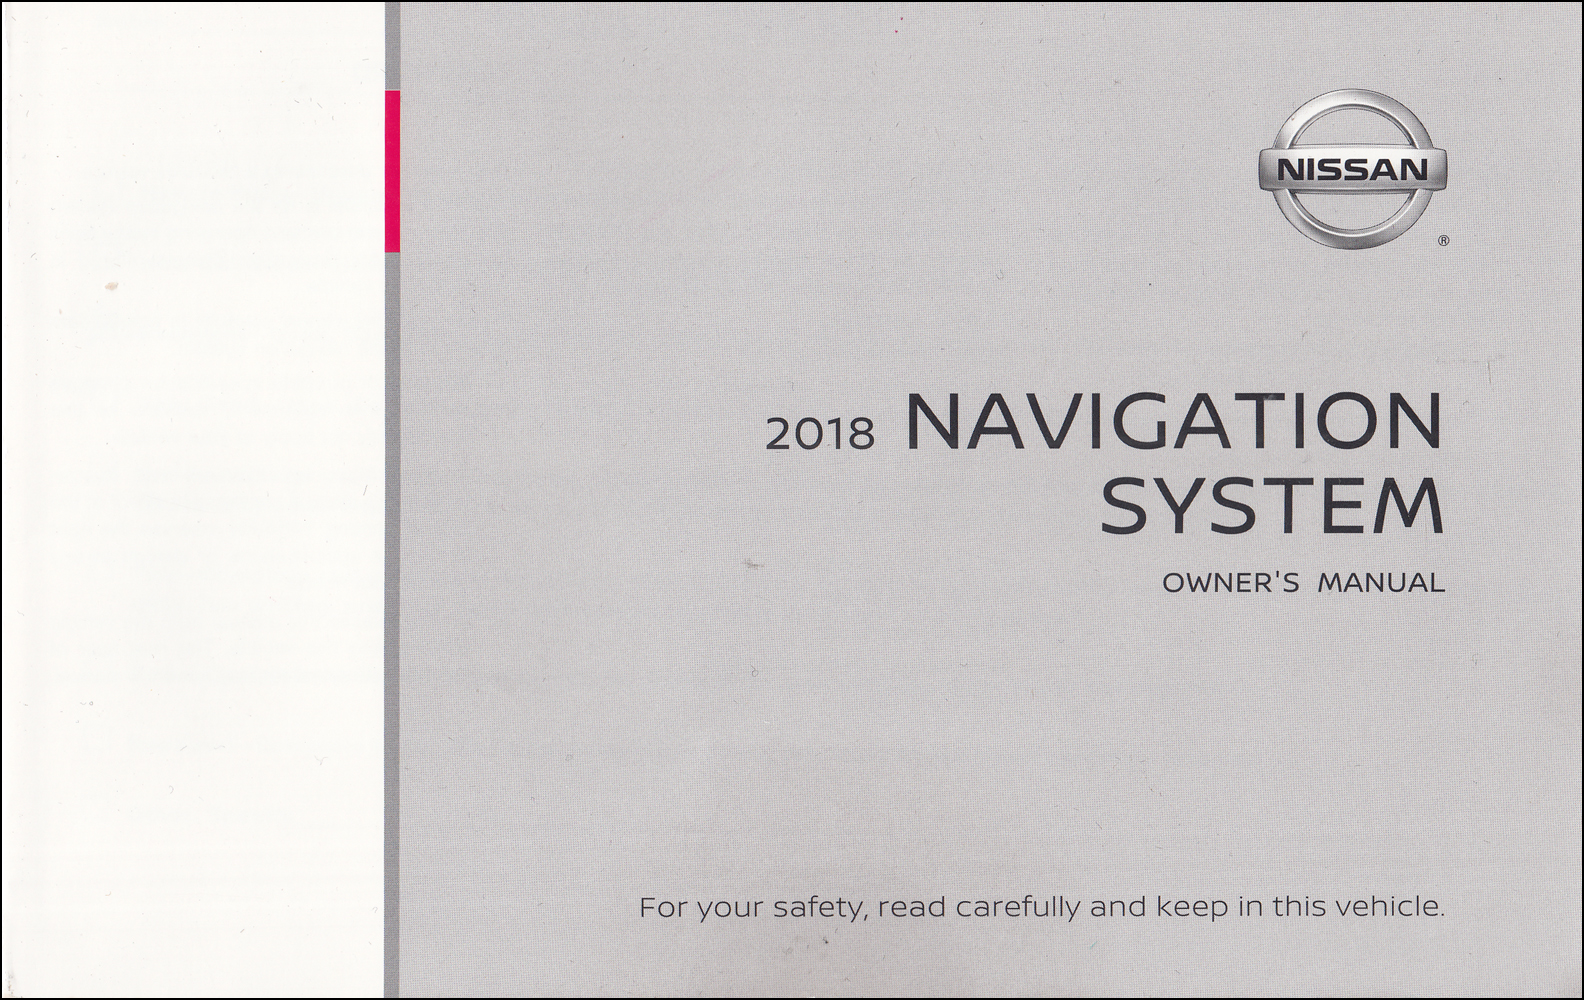 2018 Nissan LC2K Navigation System Owners Manual - Rogue Sport